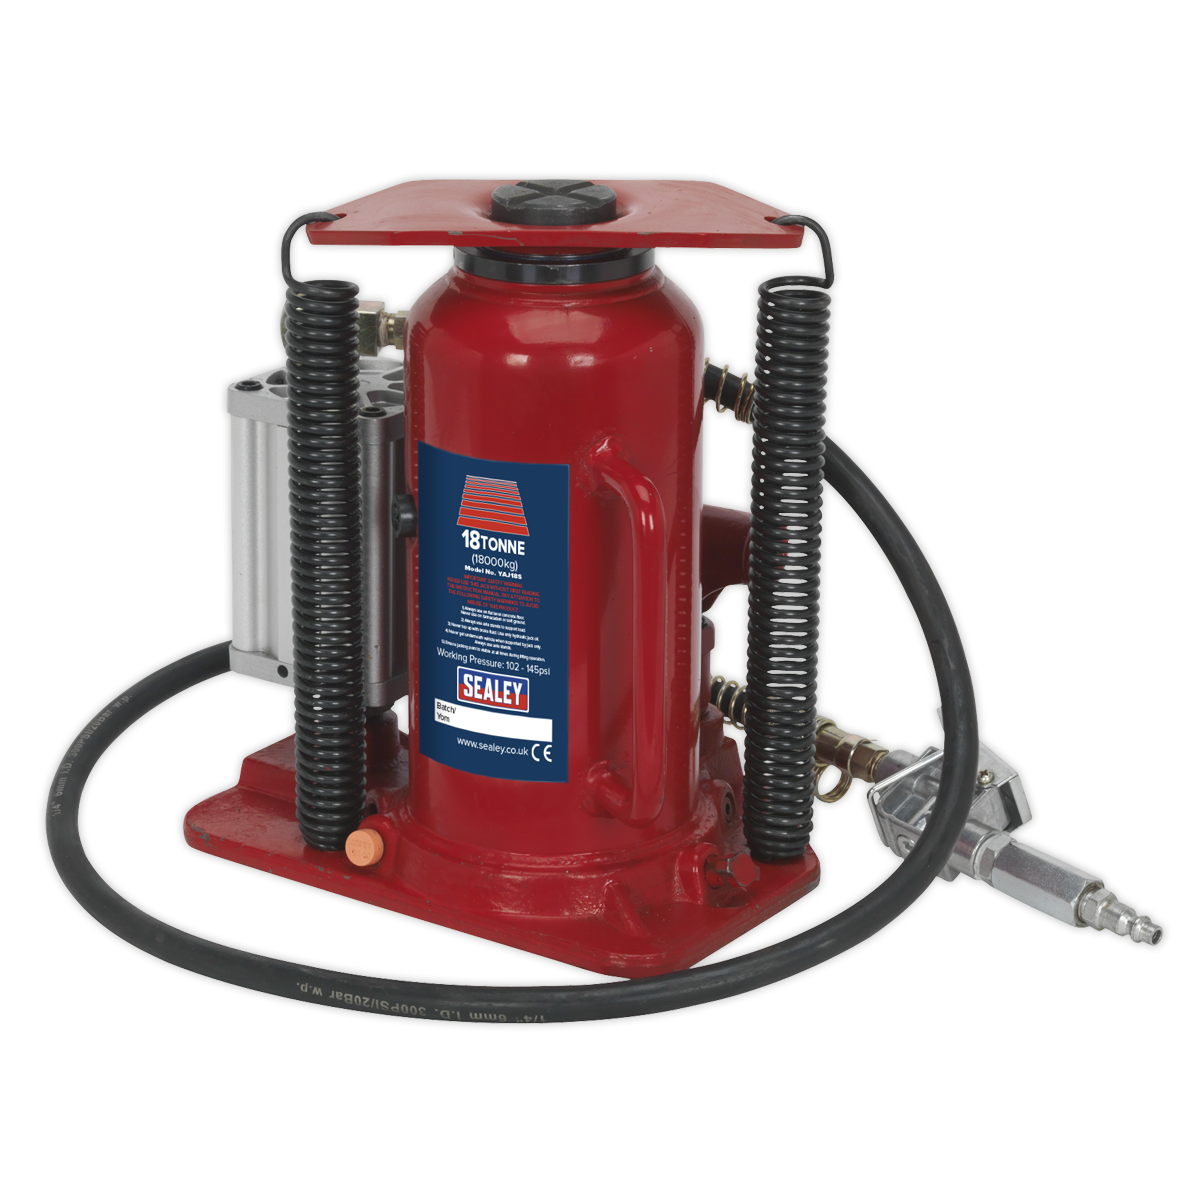 Air Operated Bottle Jack 18tonne   SEALEY YAJ18S by Sealey   New